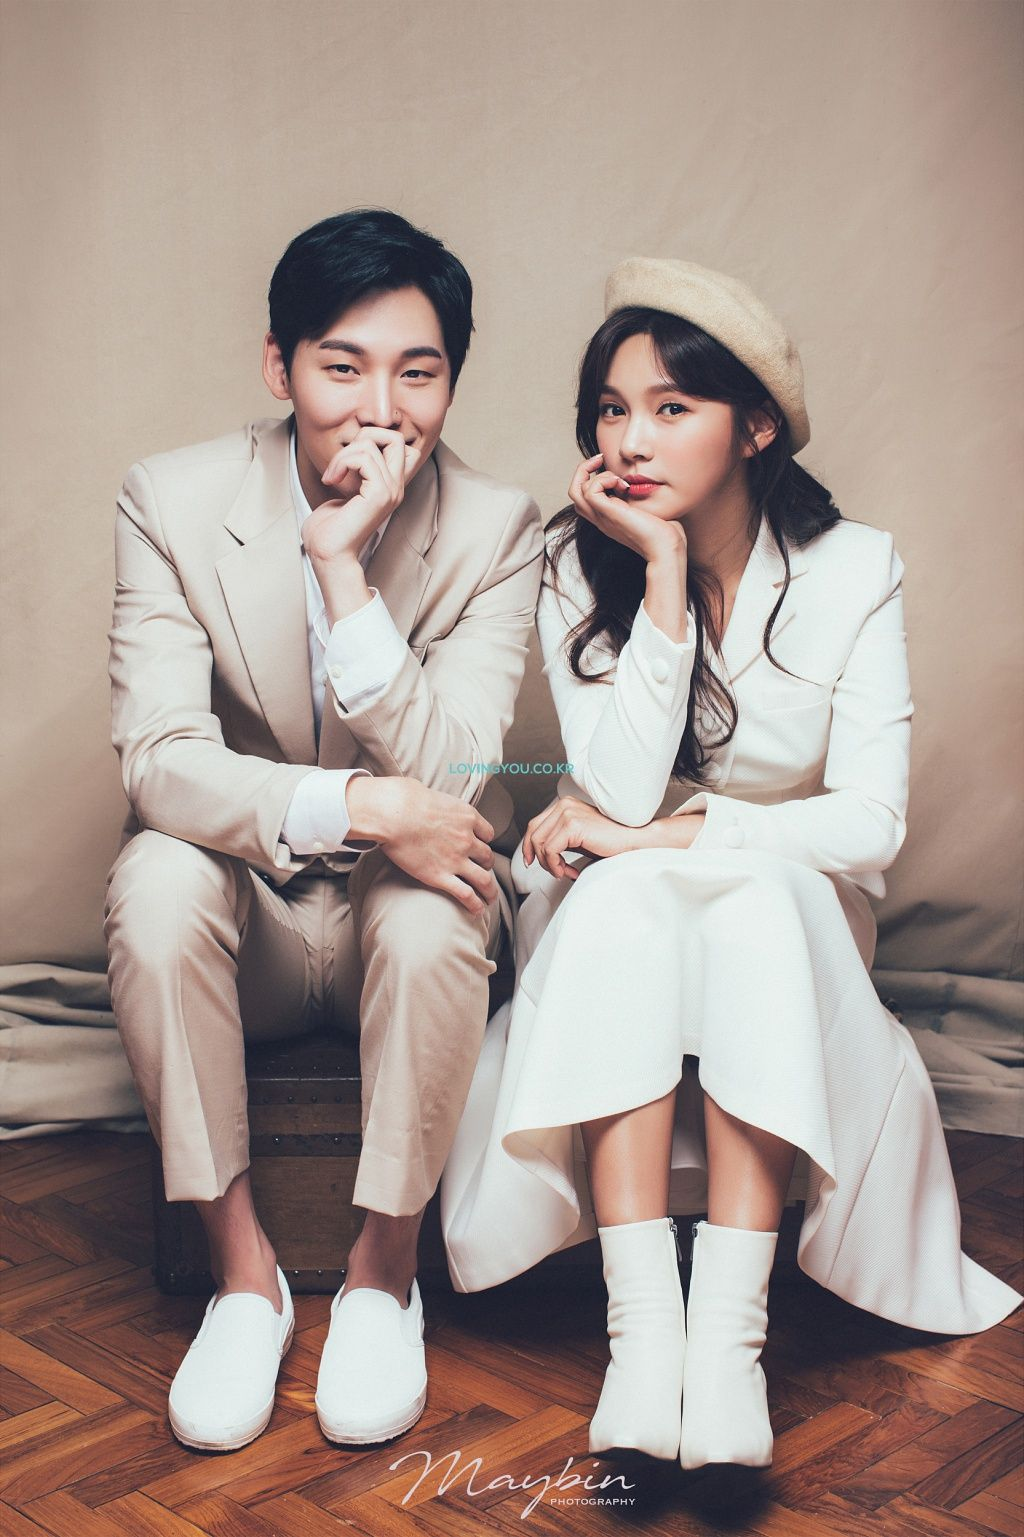 MAYBIN [2019] - KOREA PRE WEDDING PHOTOSHOOT by LOVINGYOU